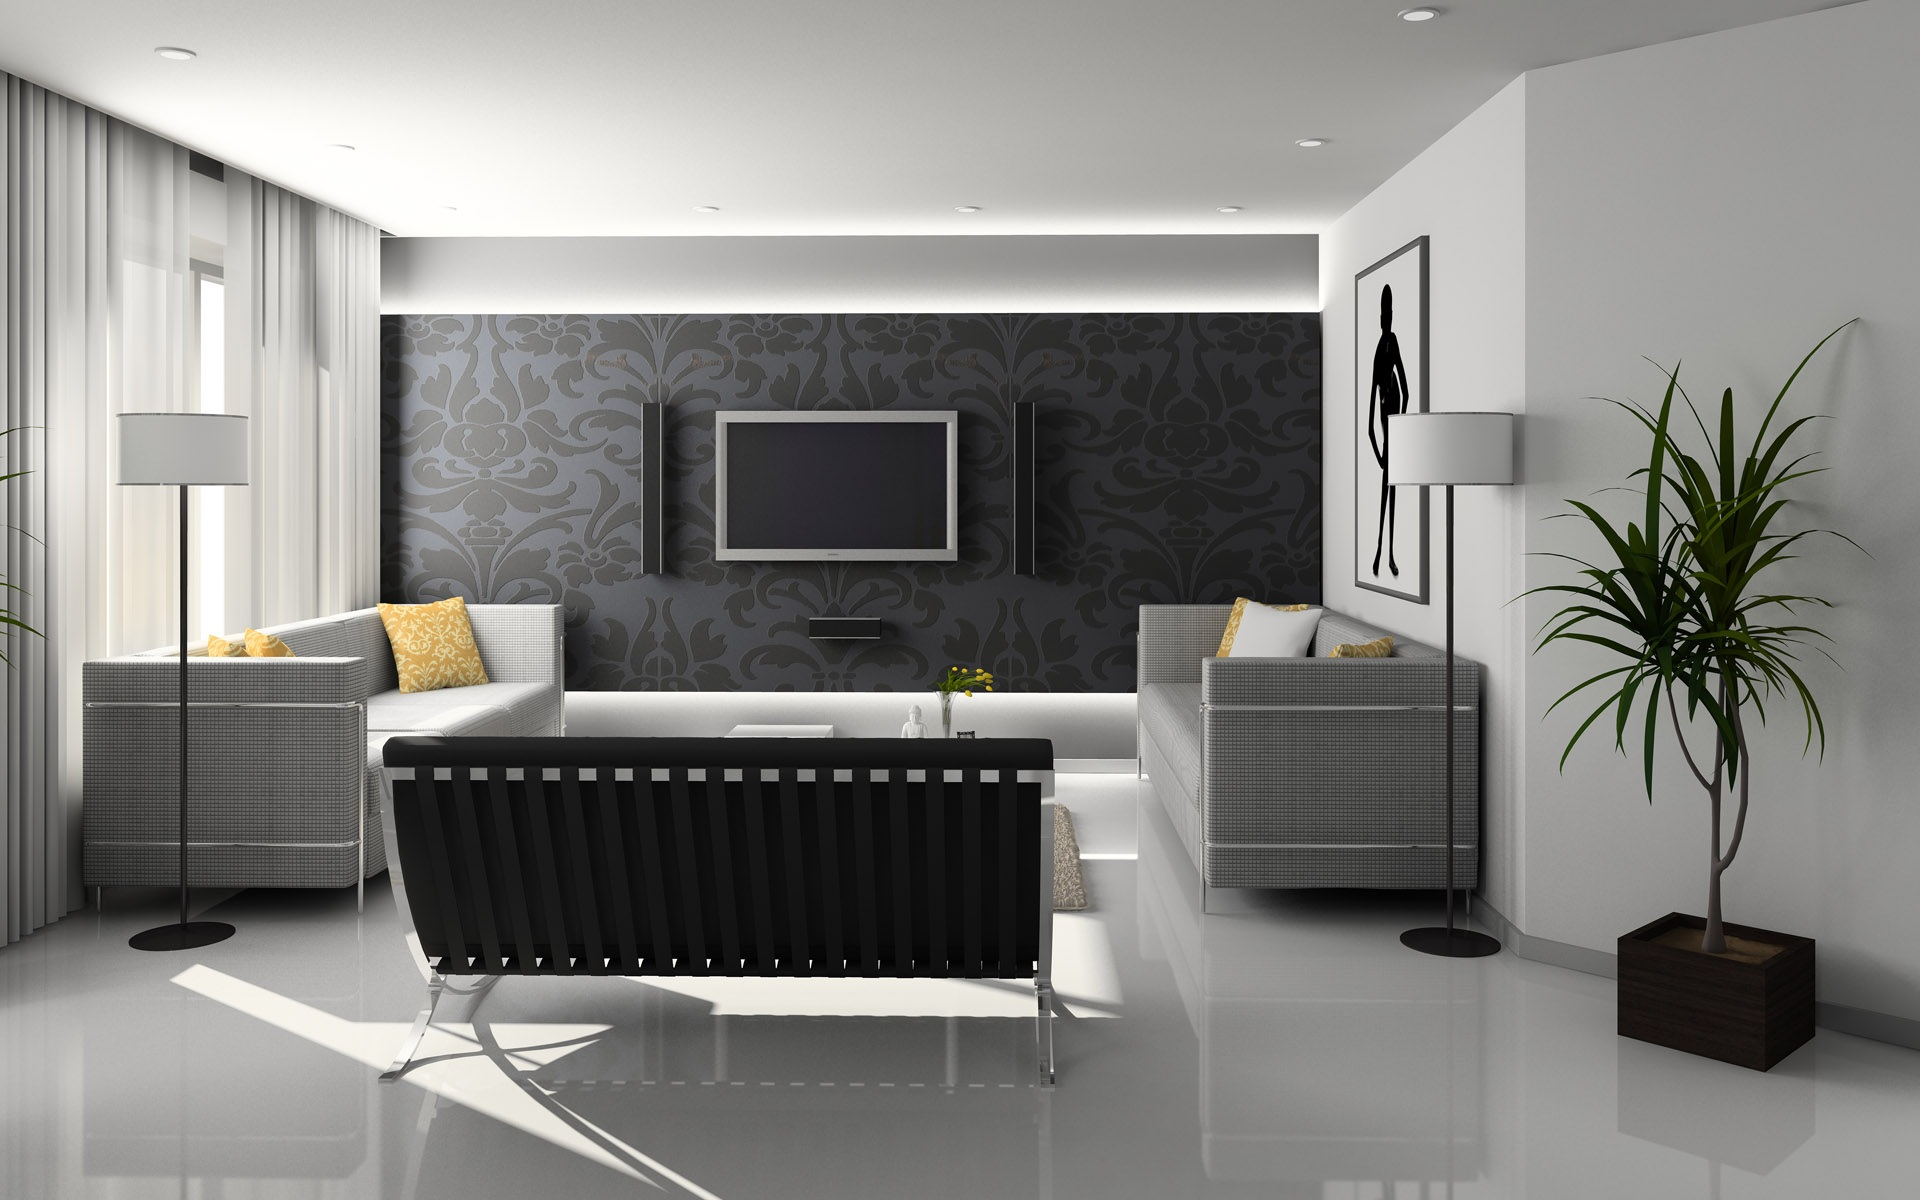 Decorating your commercial office space